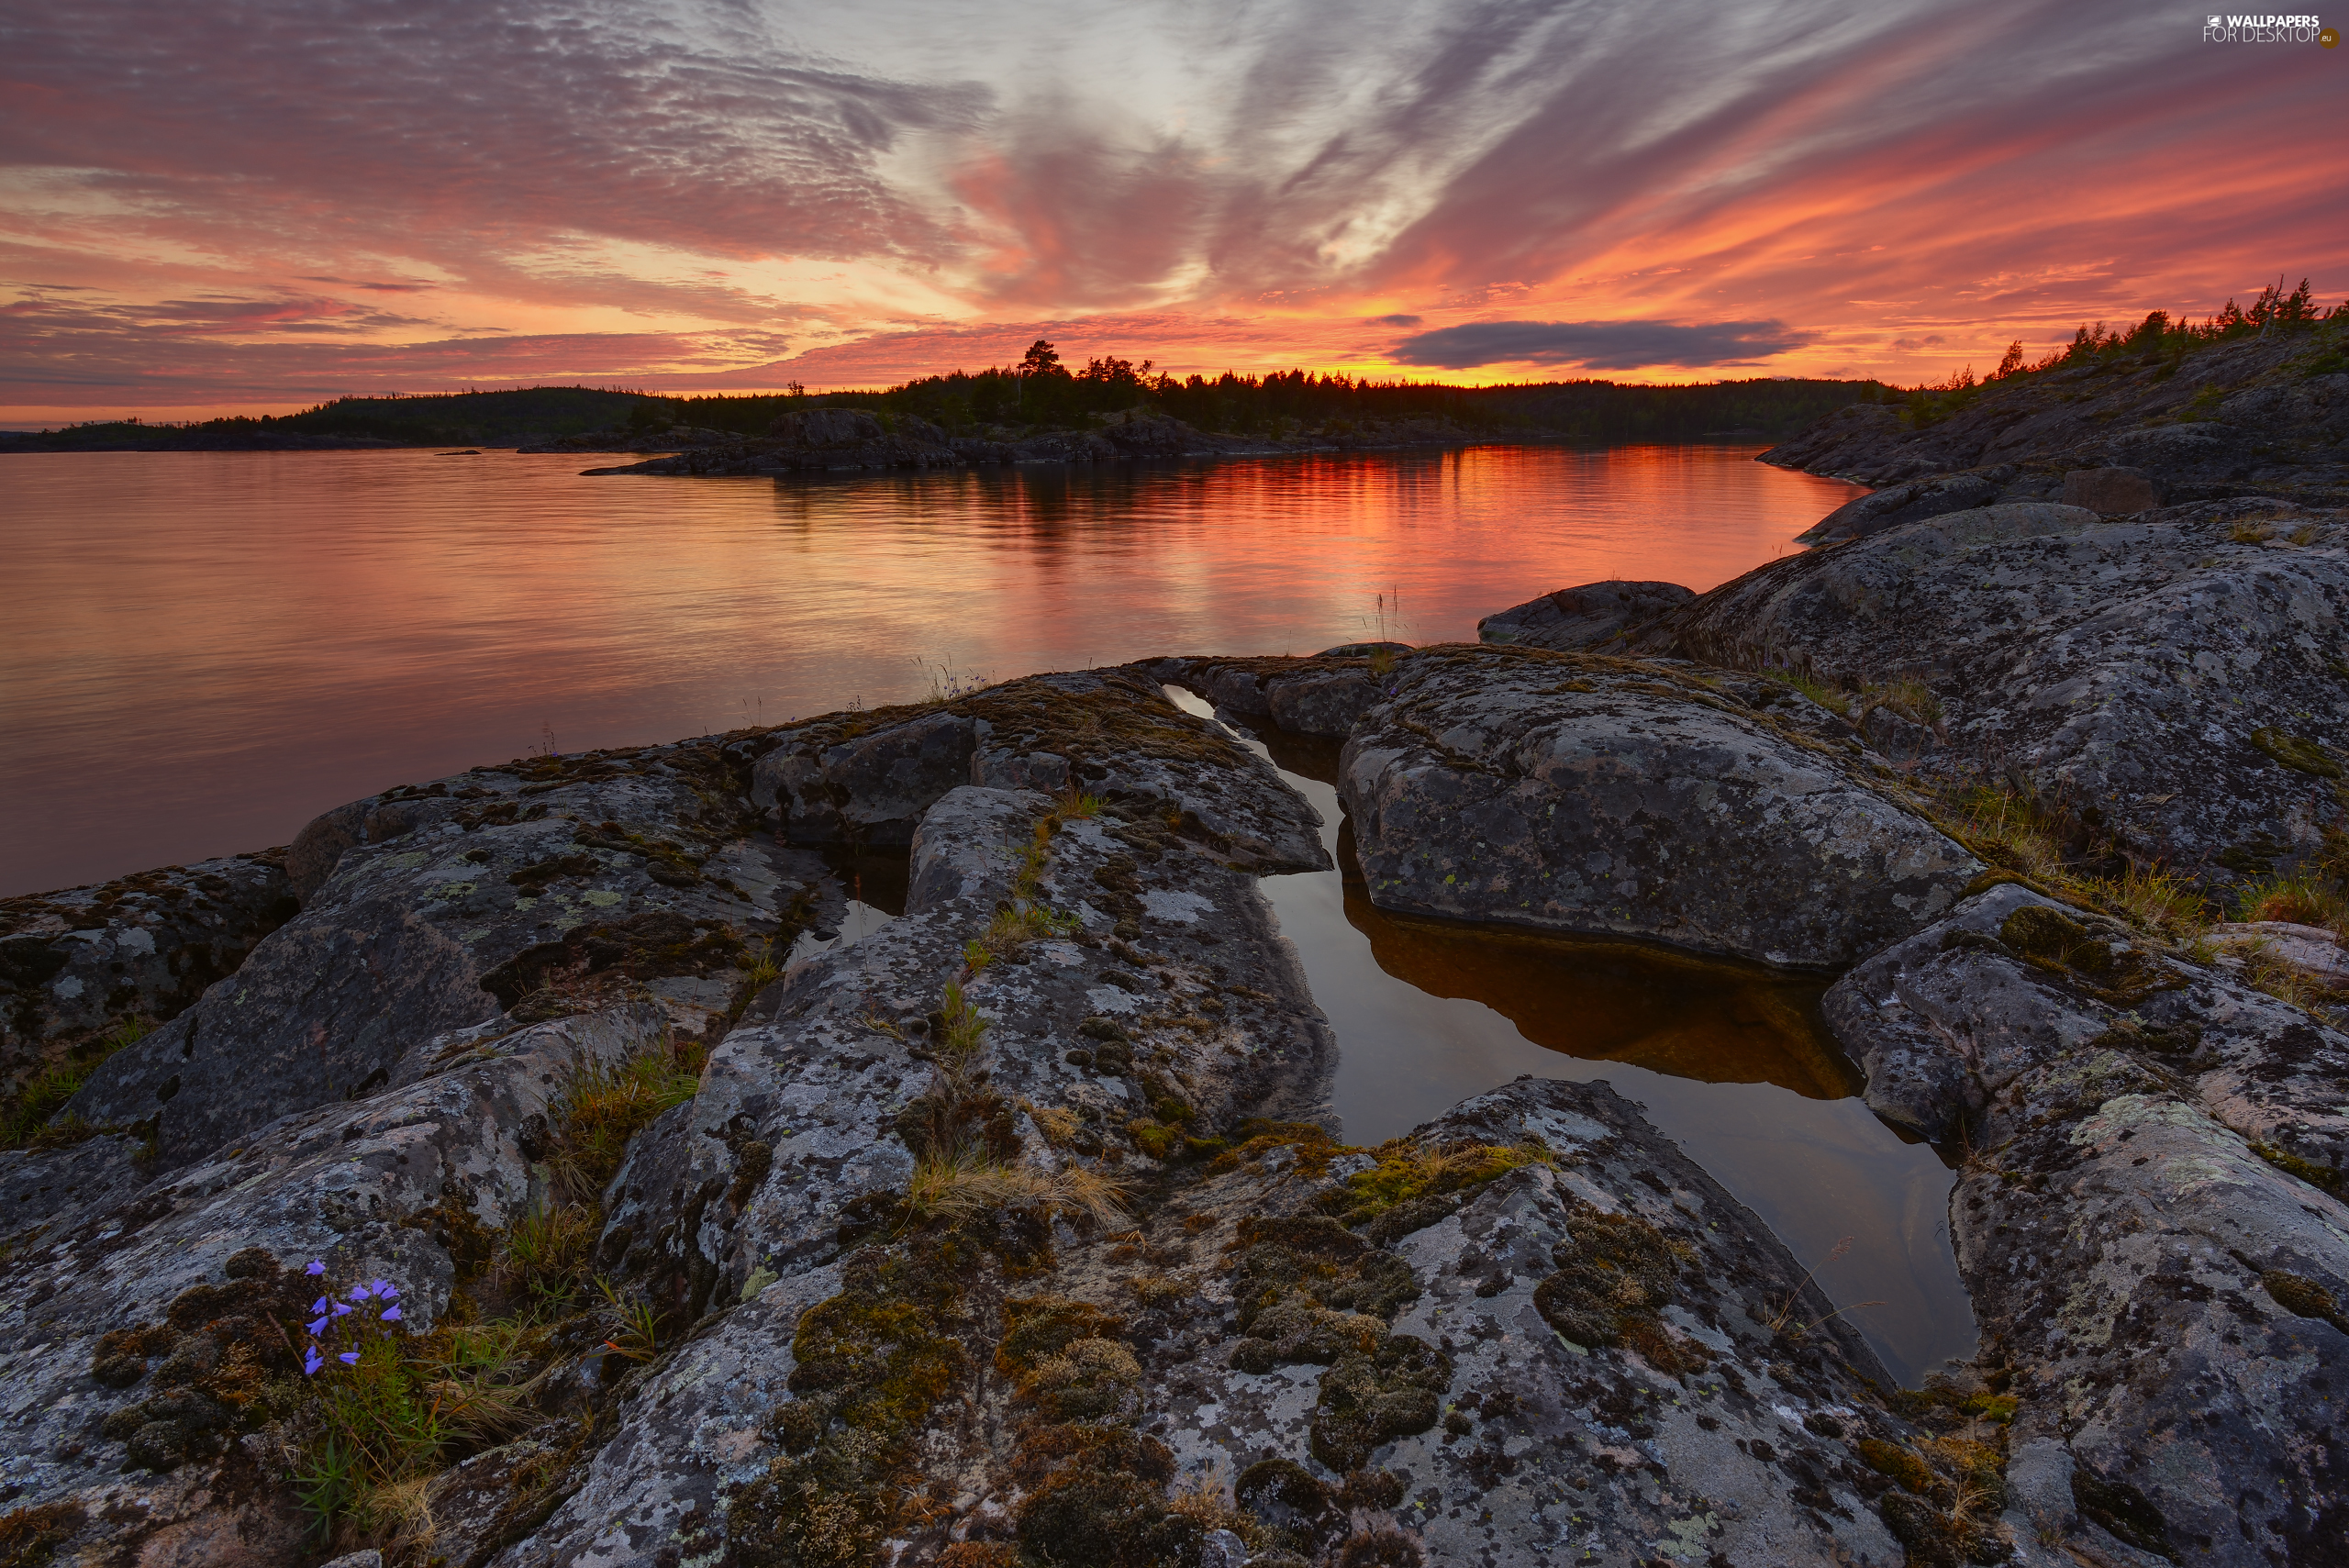 rocks, Lake Ladoga, viewes, Great Sunsets, trees, Russia